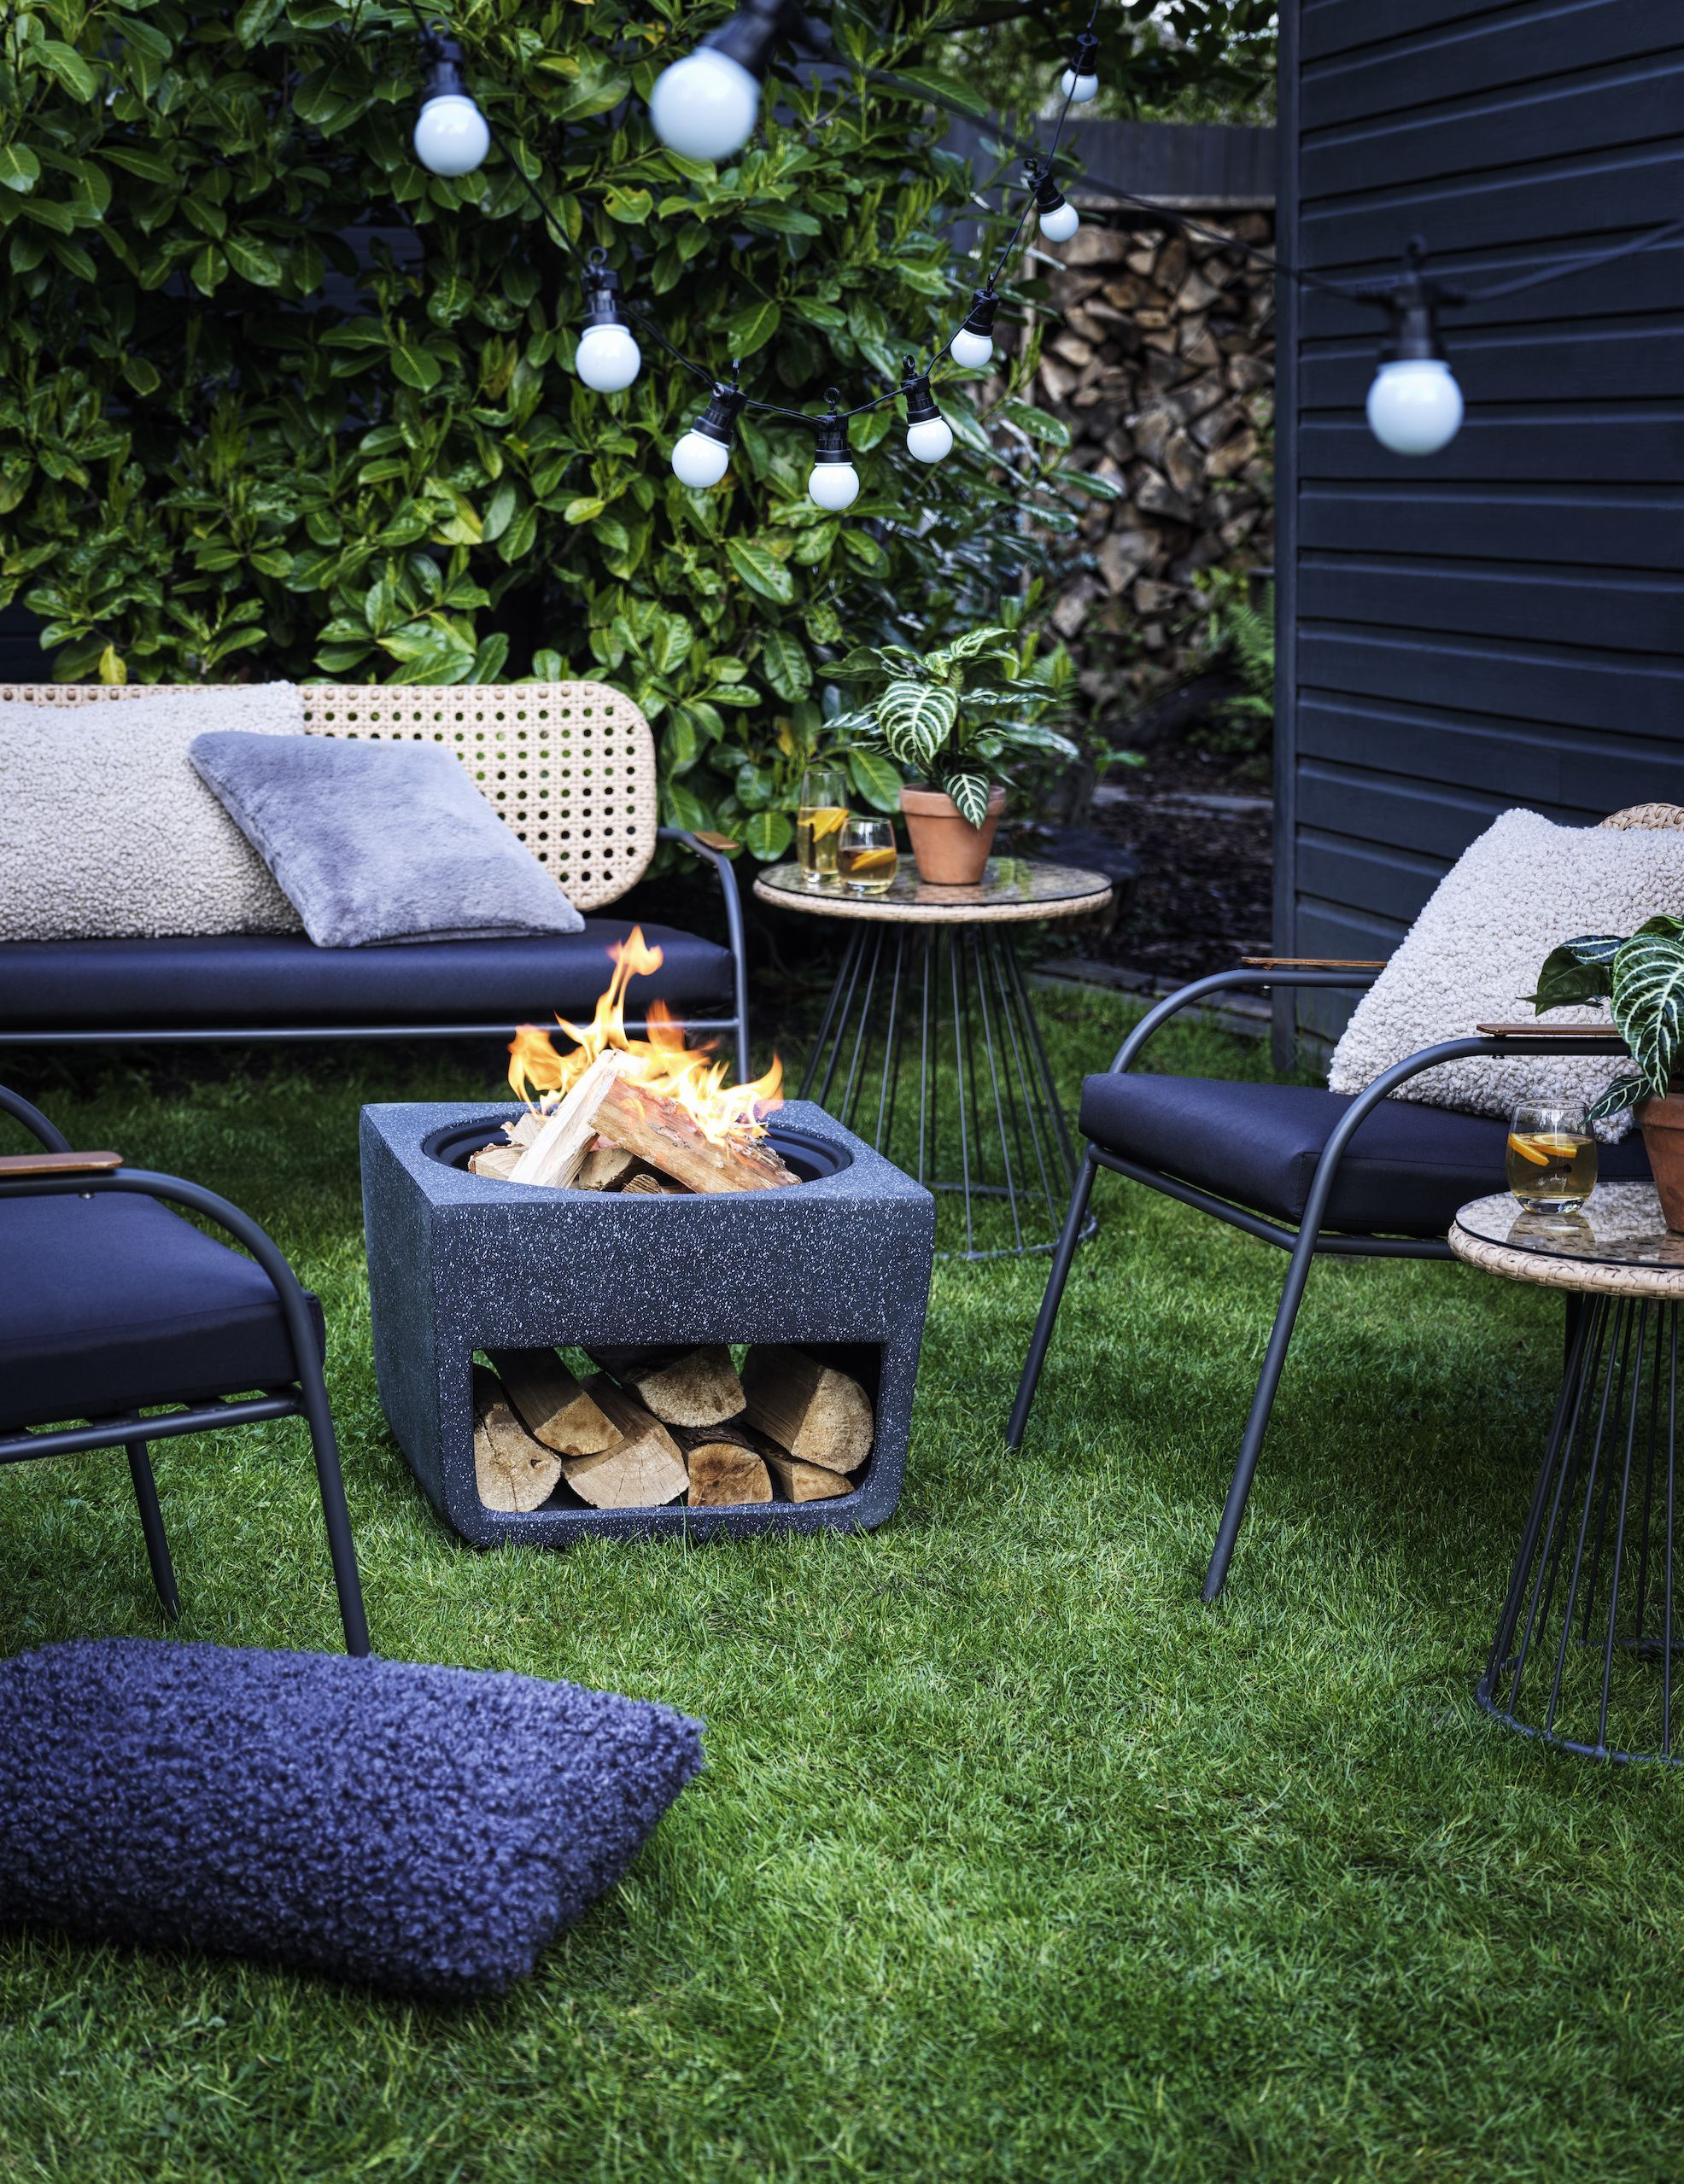 Top 10 most popular garden accessories for autumn and winter